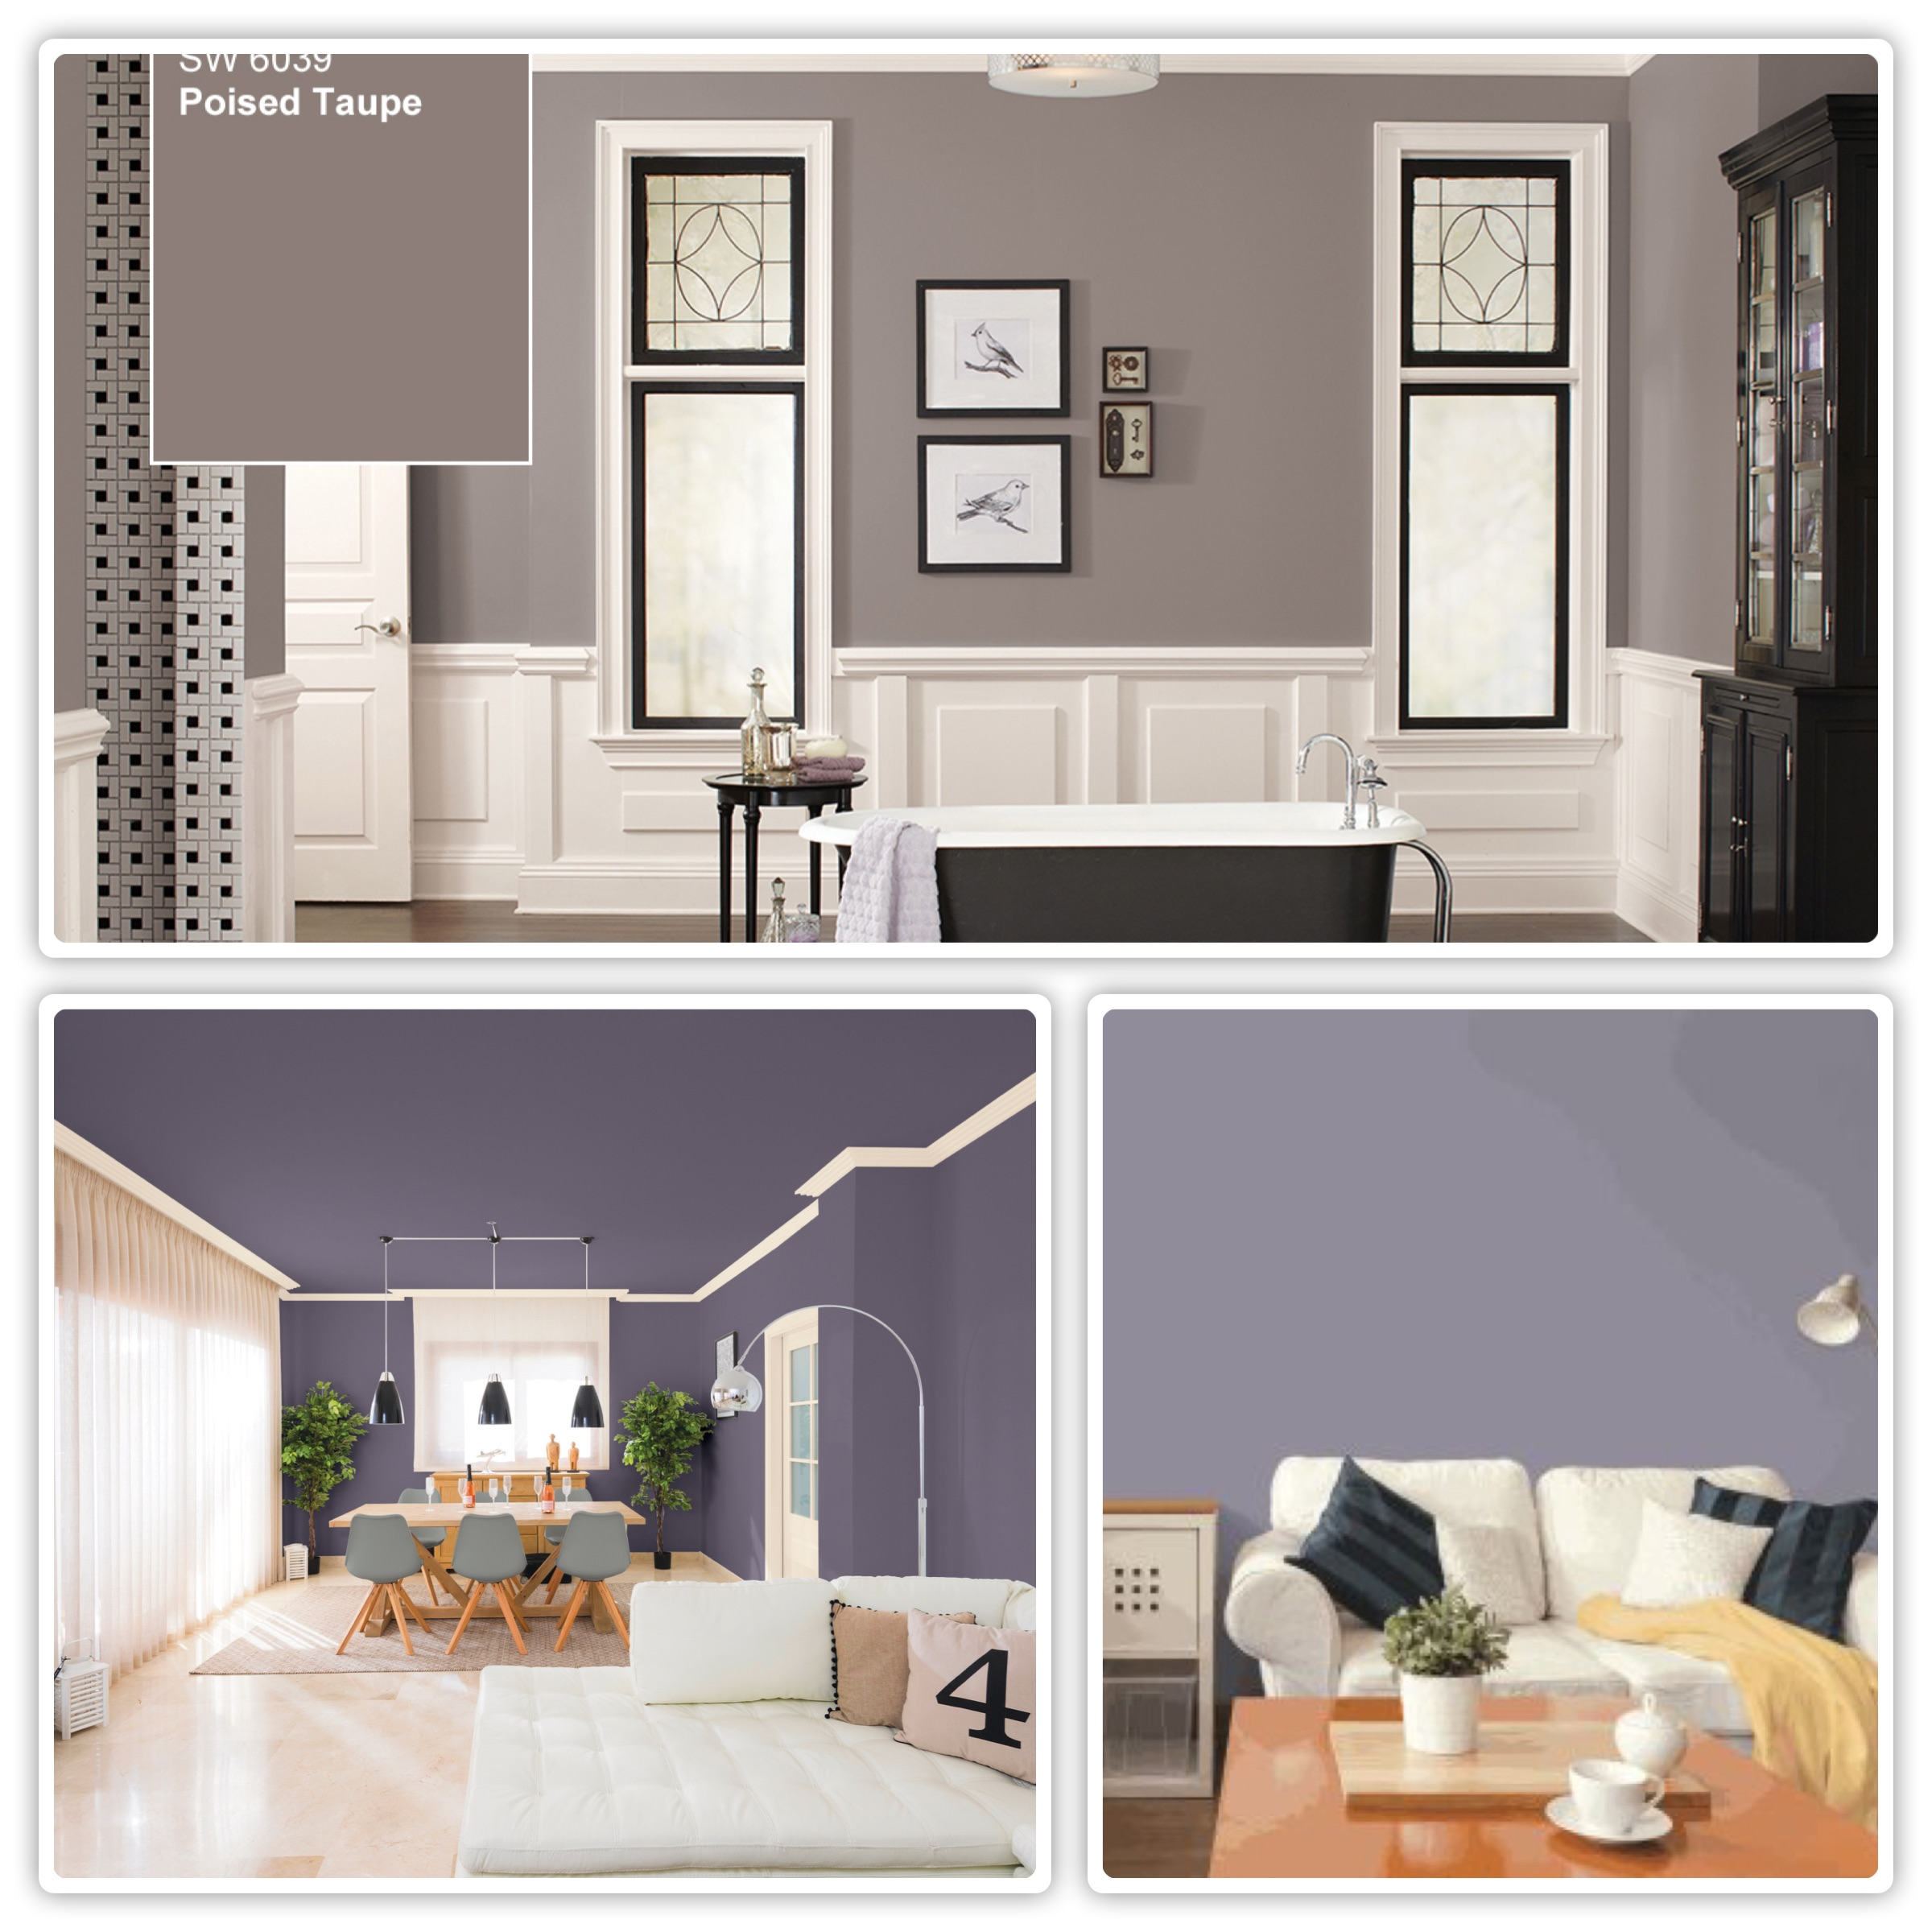 2017 colors of the year just in time for a home refresh the opinionator by irma zandl for Most popular living room paint colors 2017